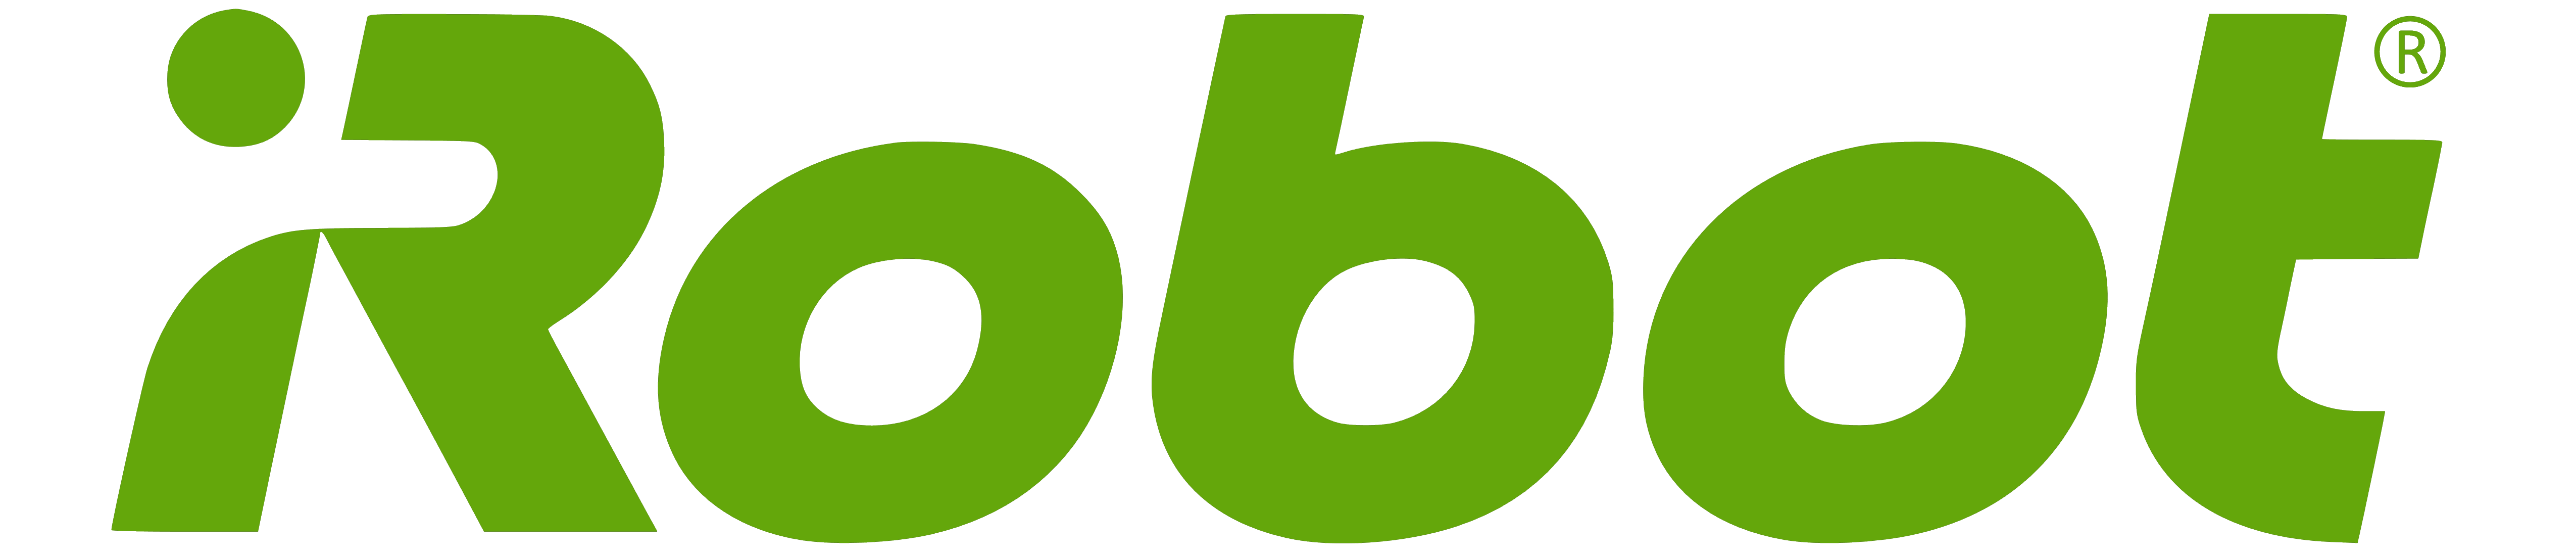 irobot � logos download